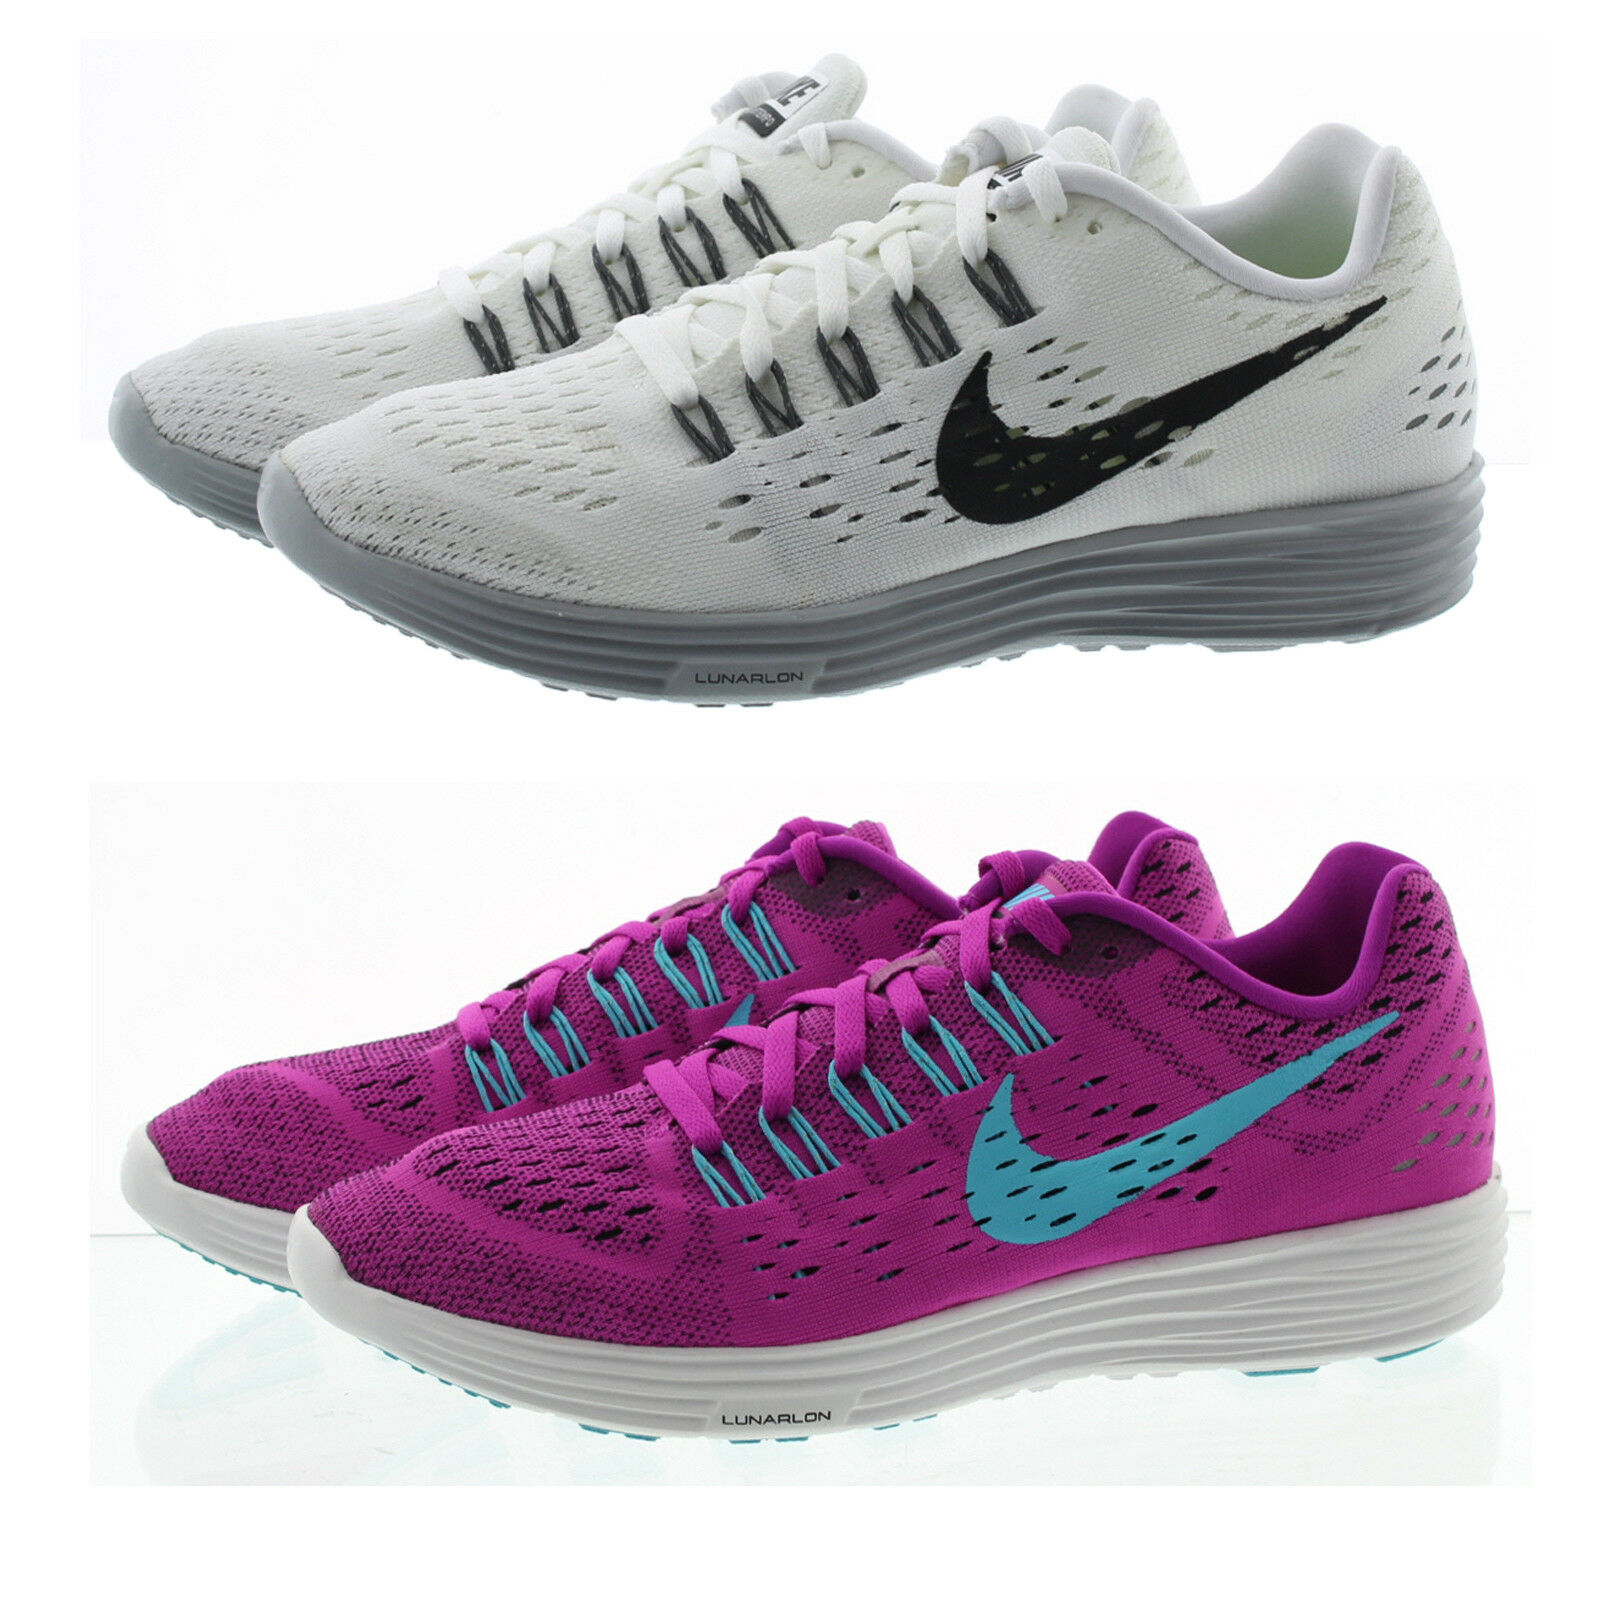 Nike 705462 Womens LunarTempo Training Running Cross Training LunarTempo Shoes Sneakers 2cbbfe